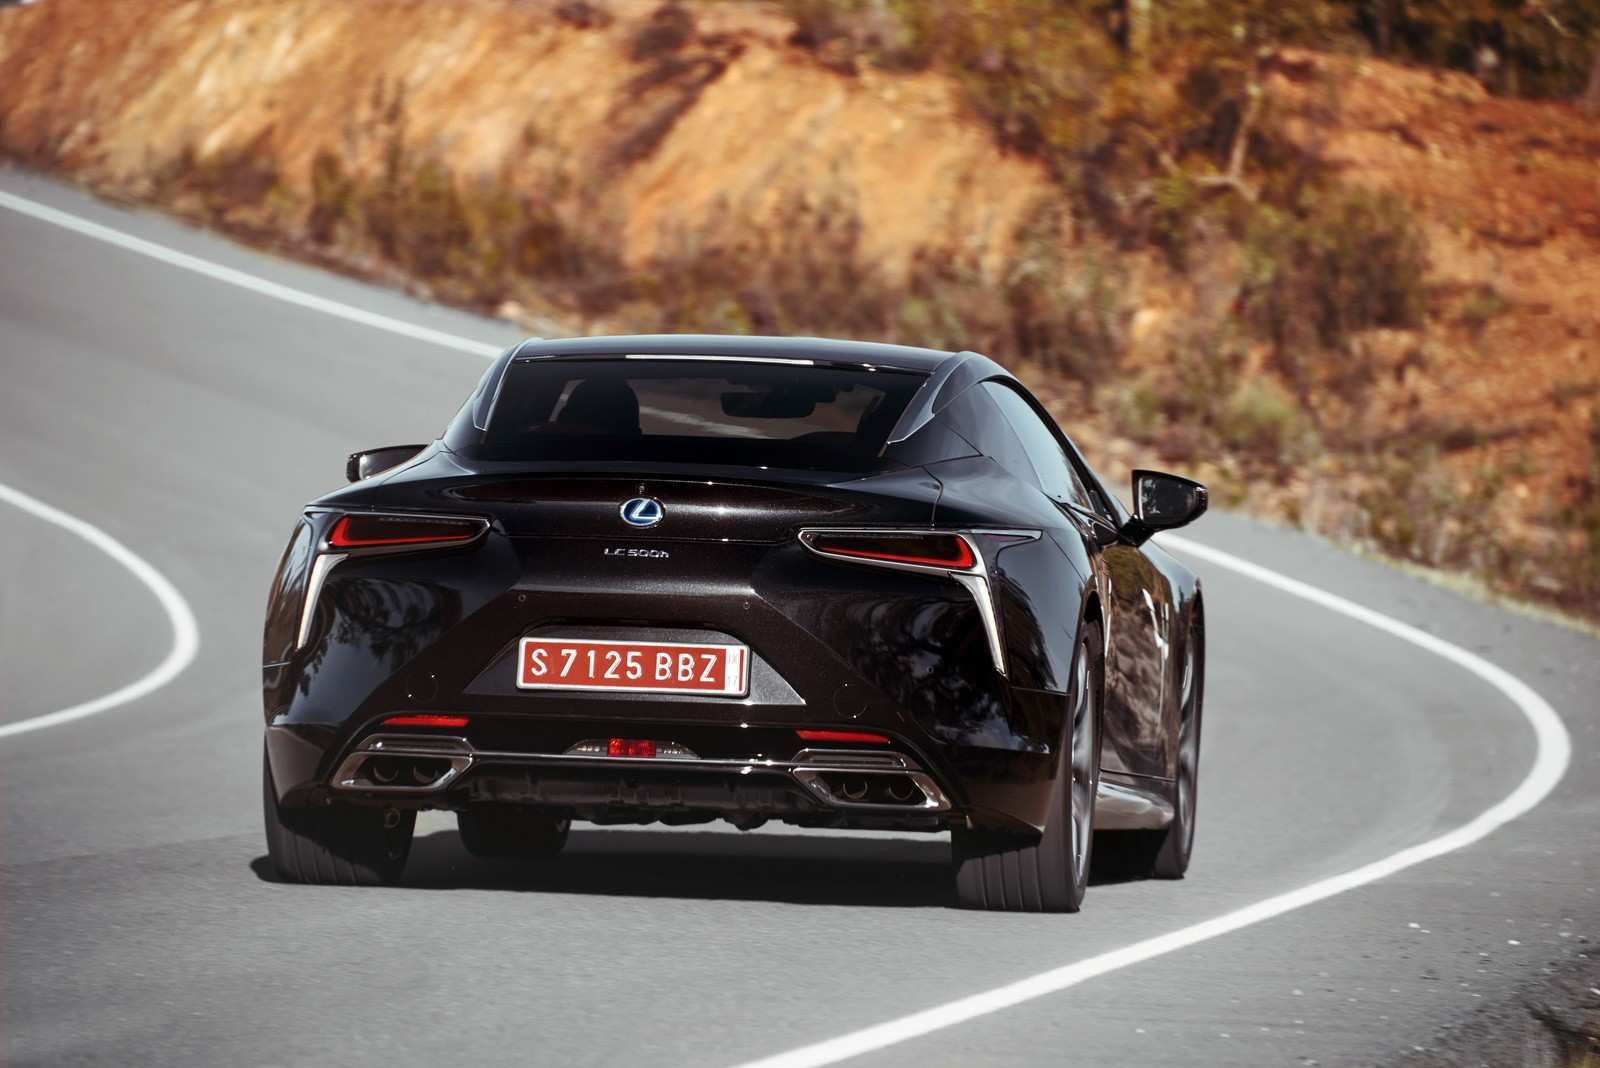 83 All New 2019 Lexus Lc F Pricing